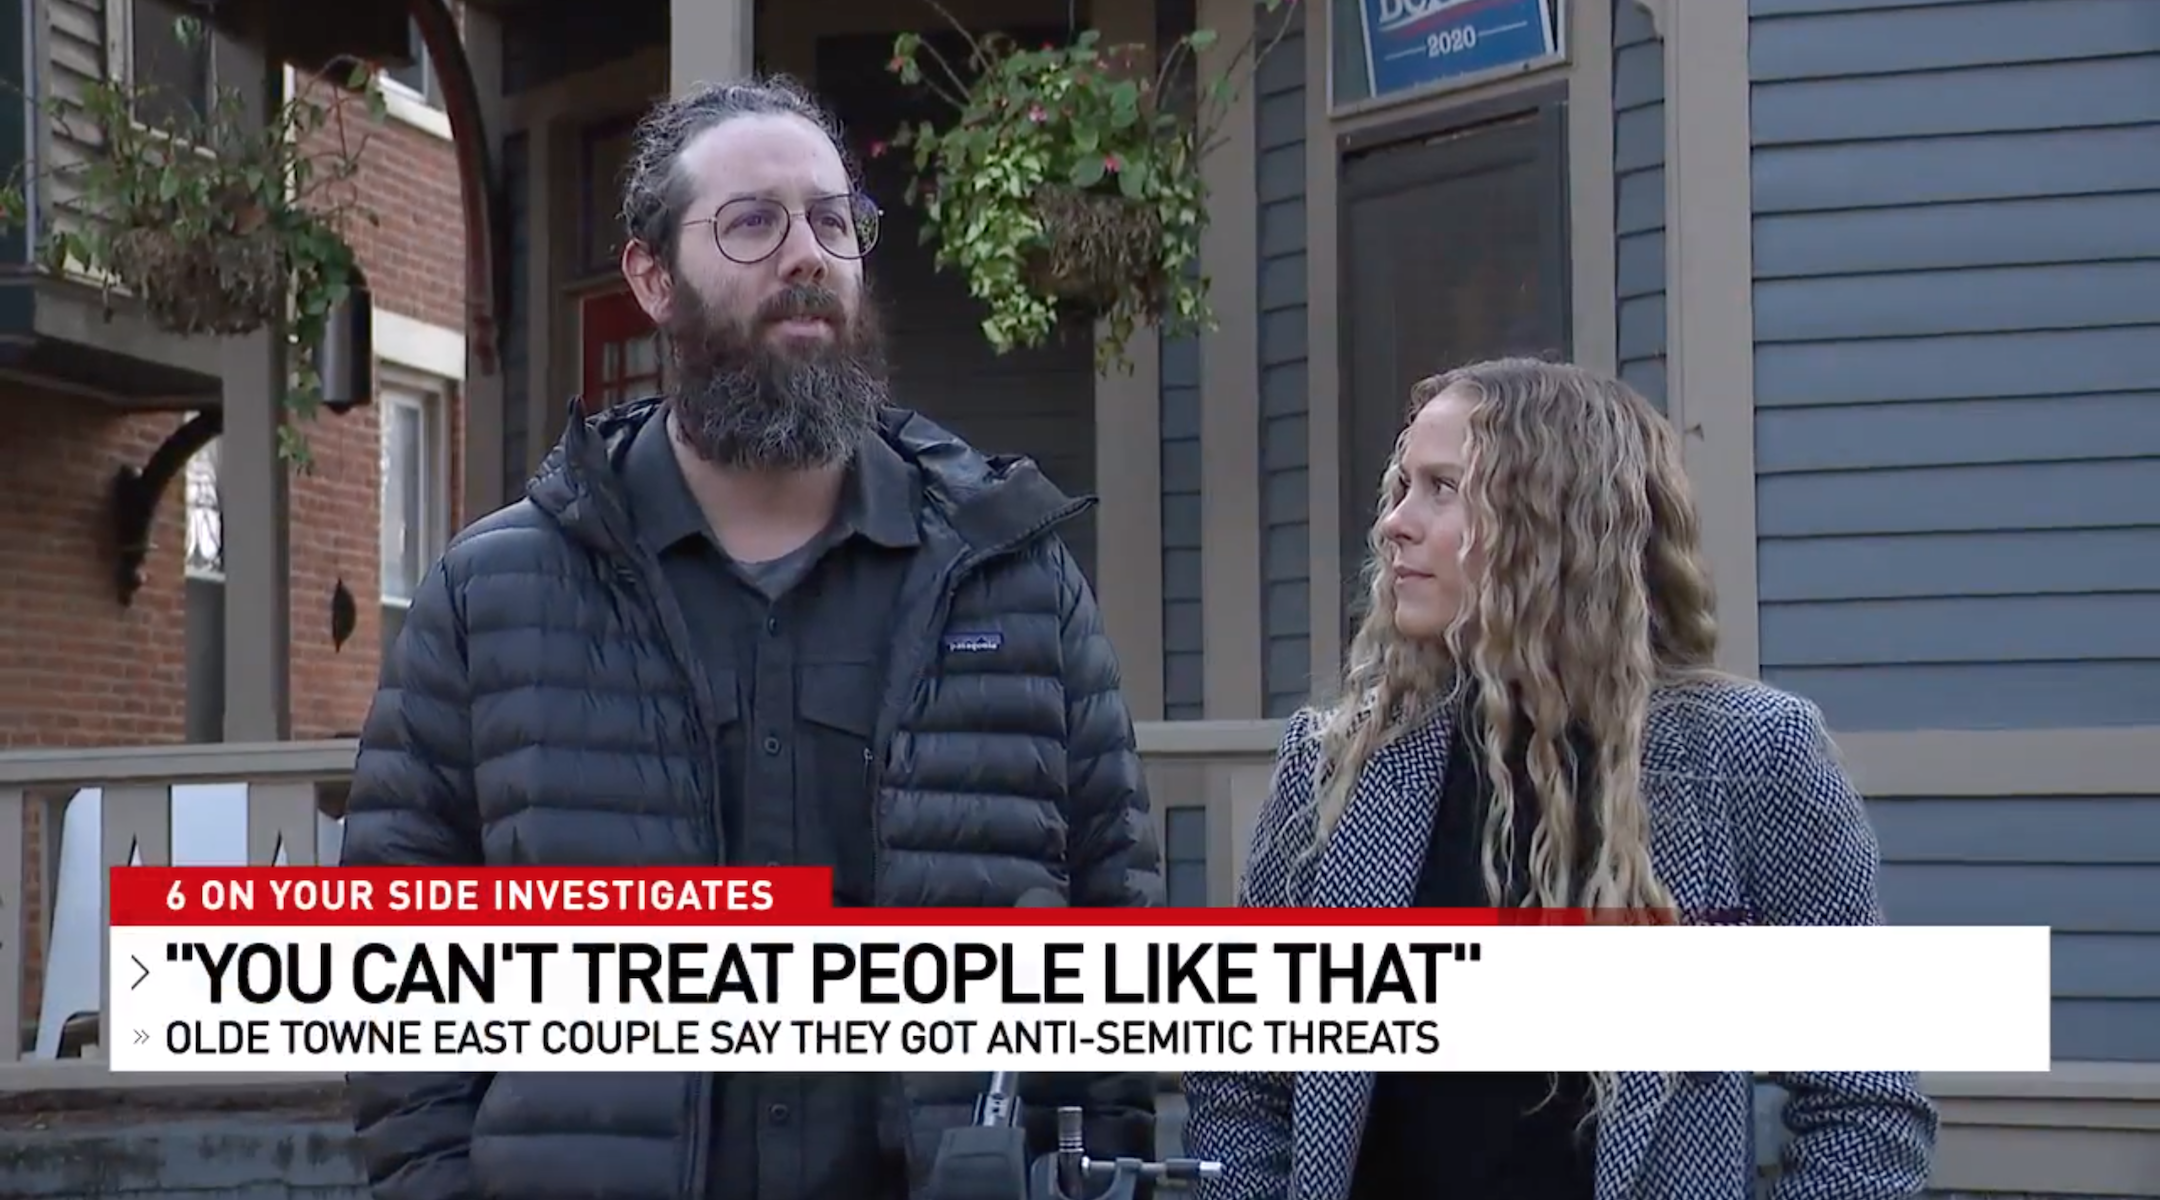 Ohio Jewish couple say they were victims of anti-Semitic hate crime by their neighbor